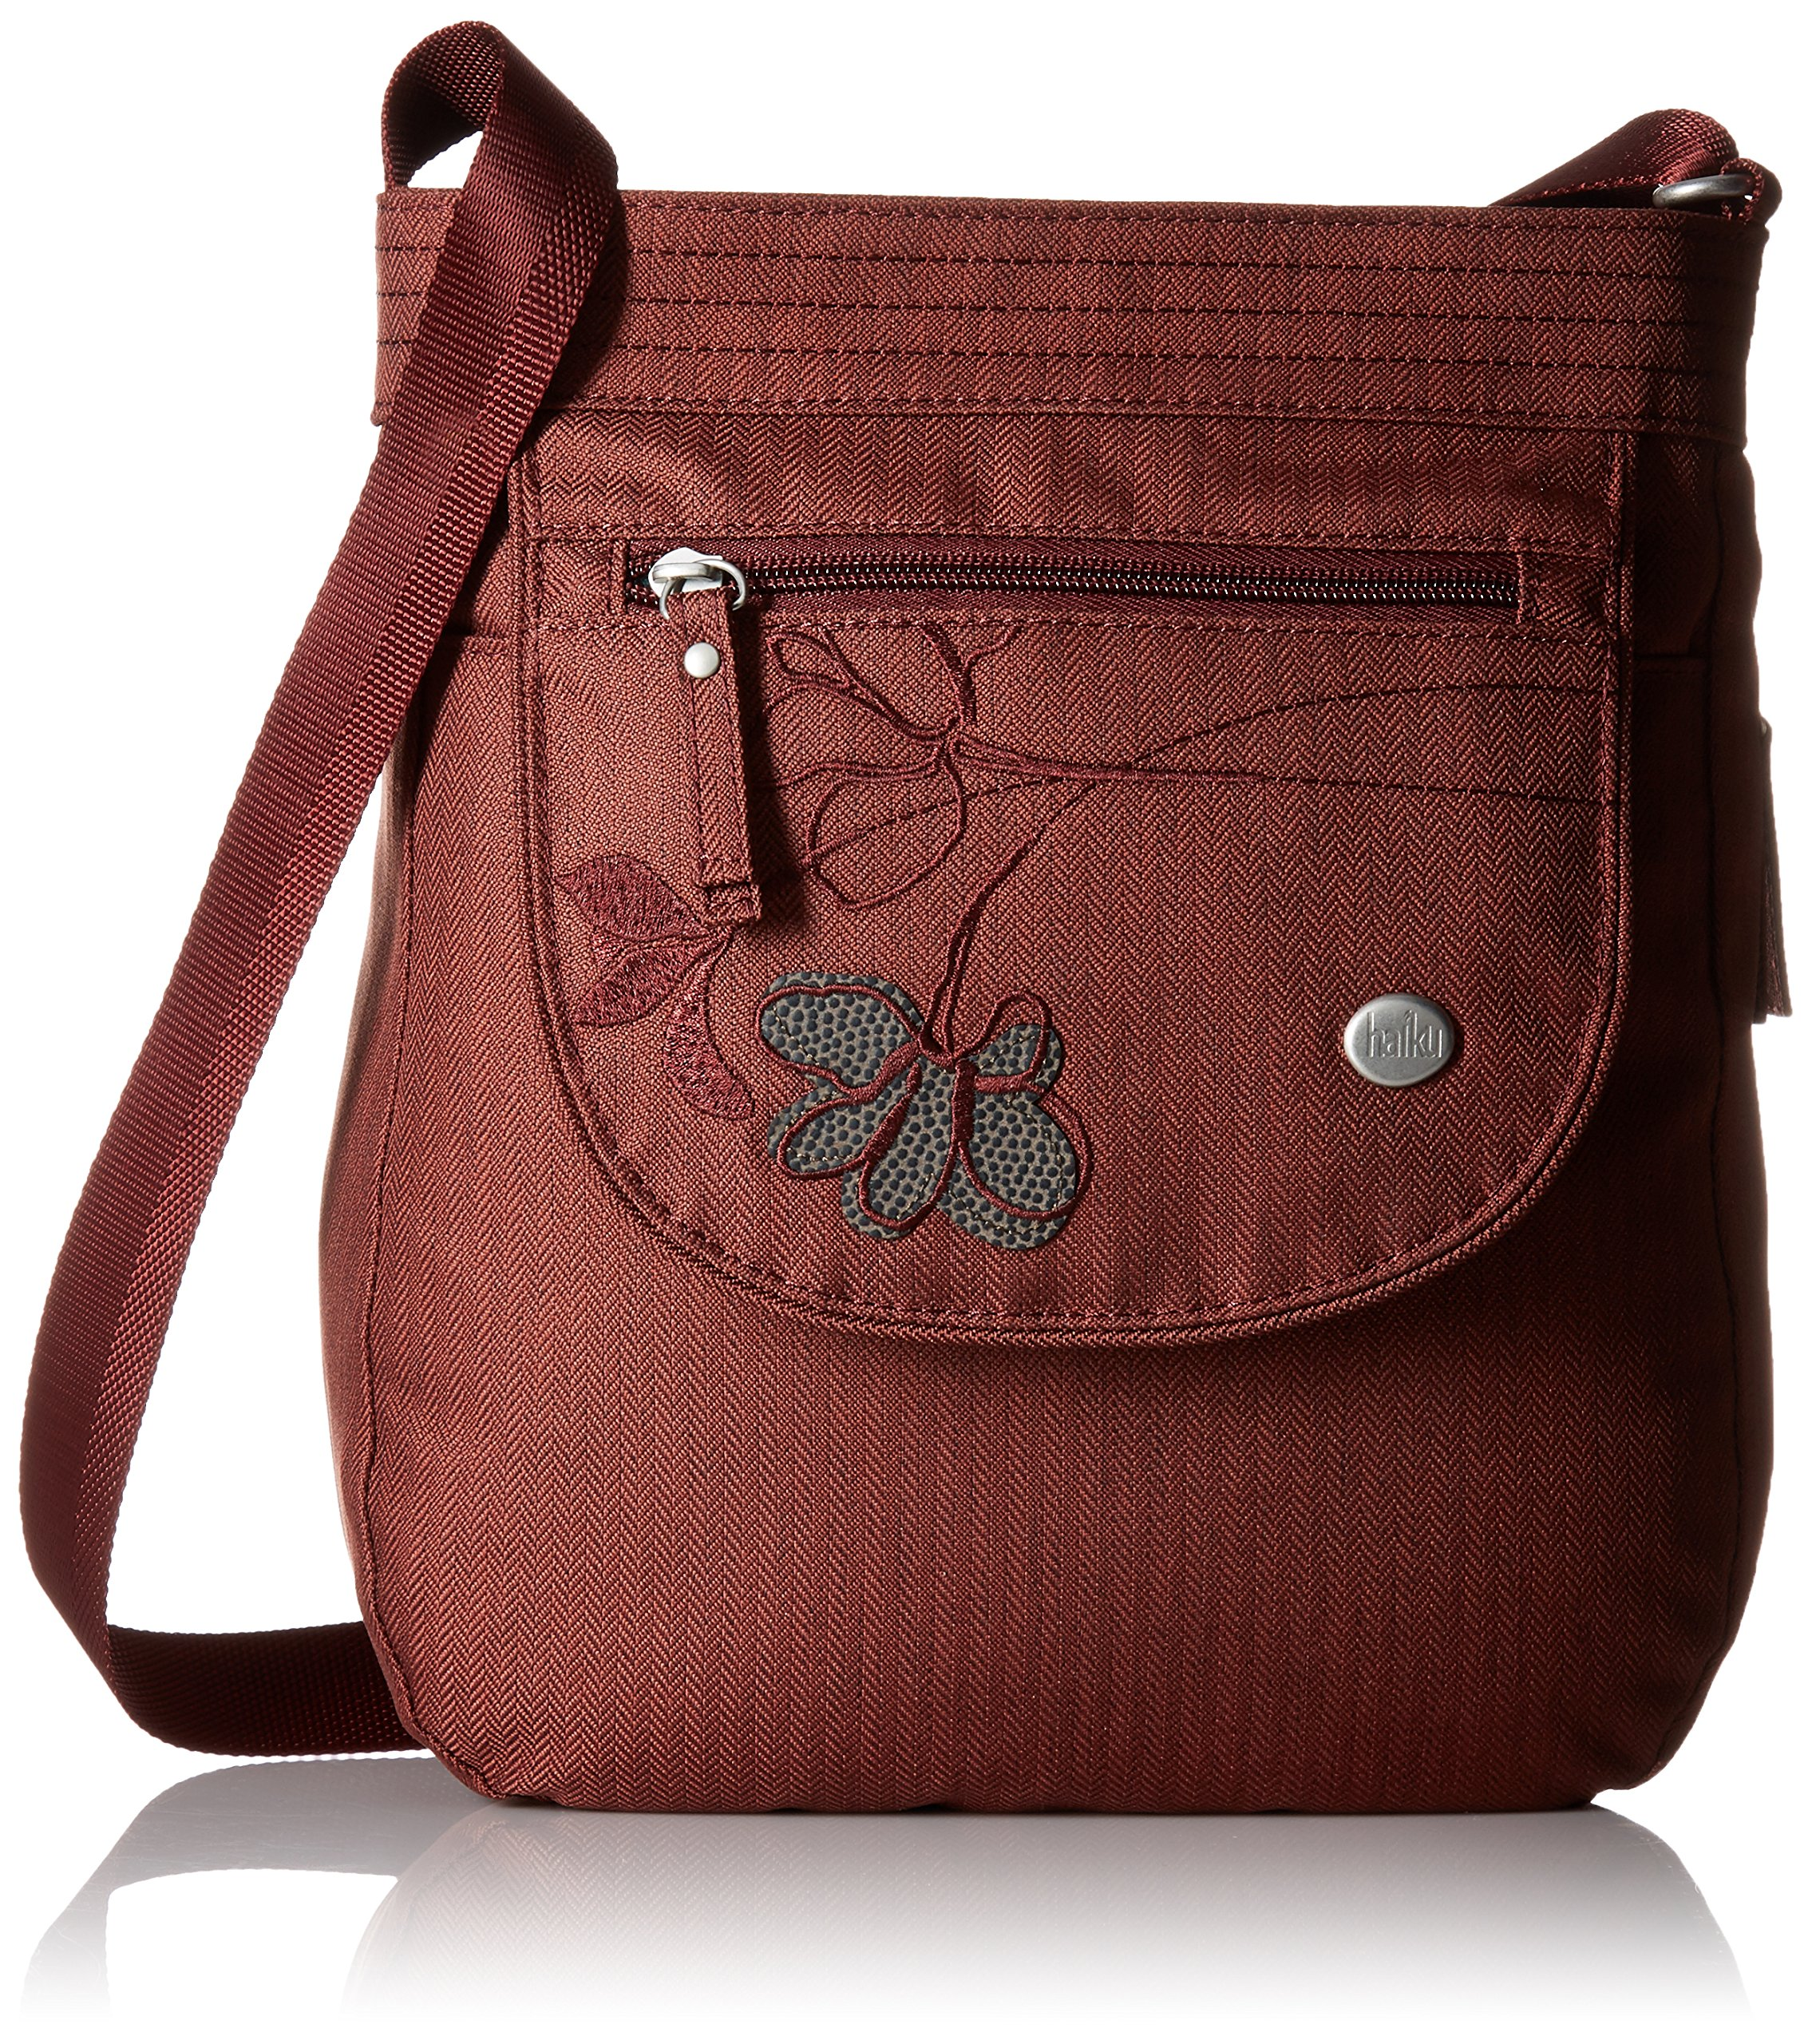 Haiku Women's Jaunt Crossbody Handbag, Andorra